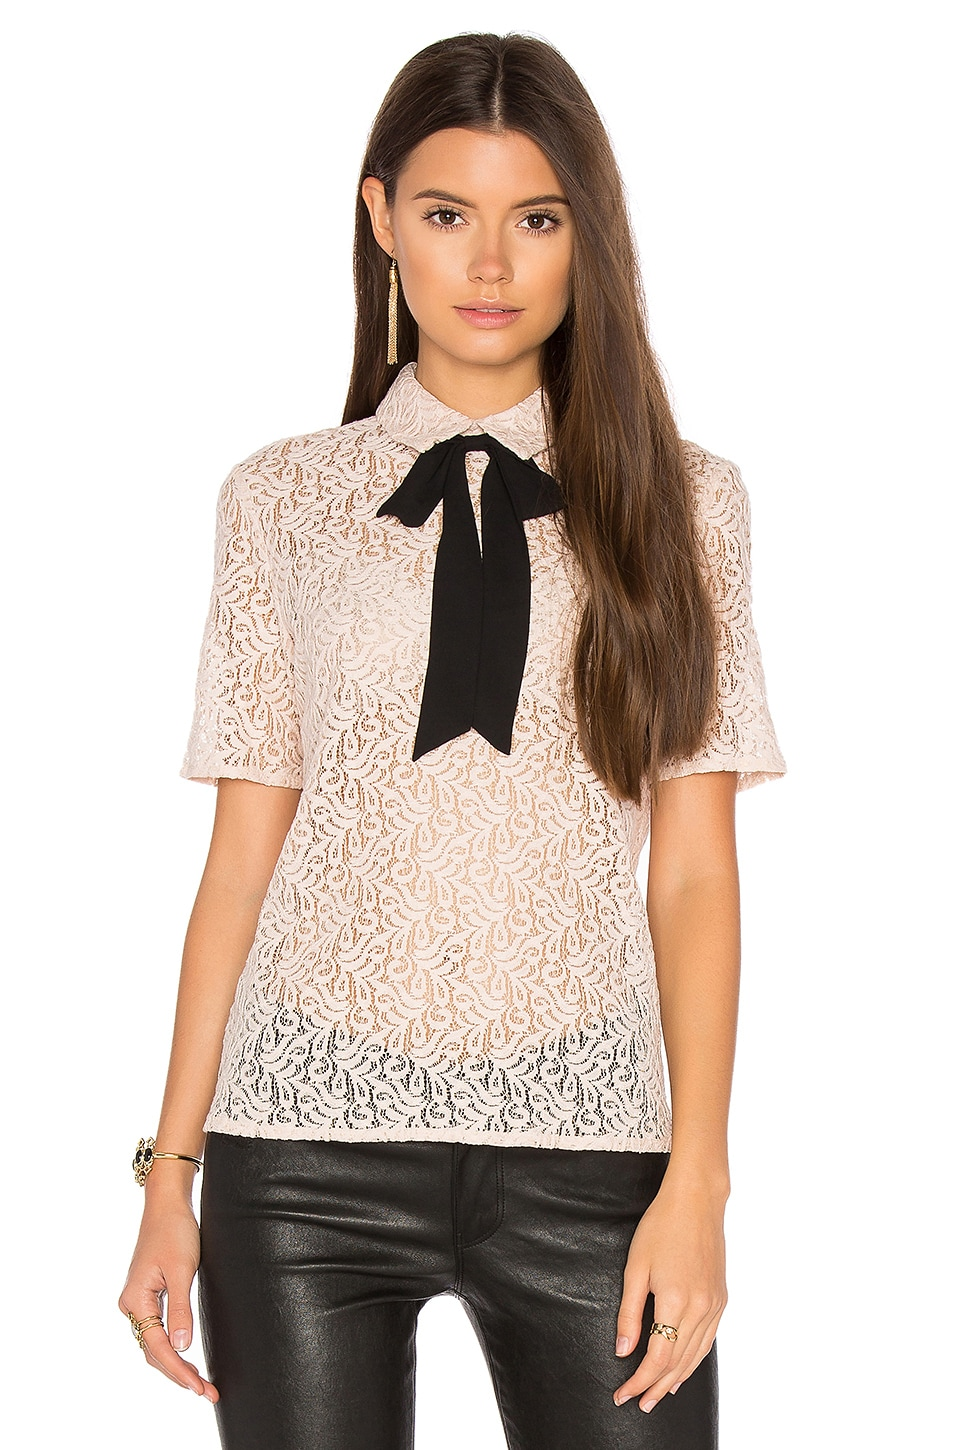 The Kooples Lace Tie Neck Top in Blush